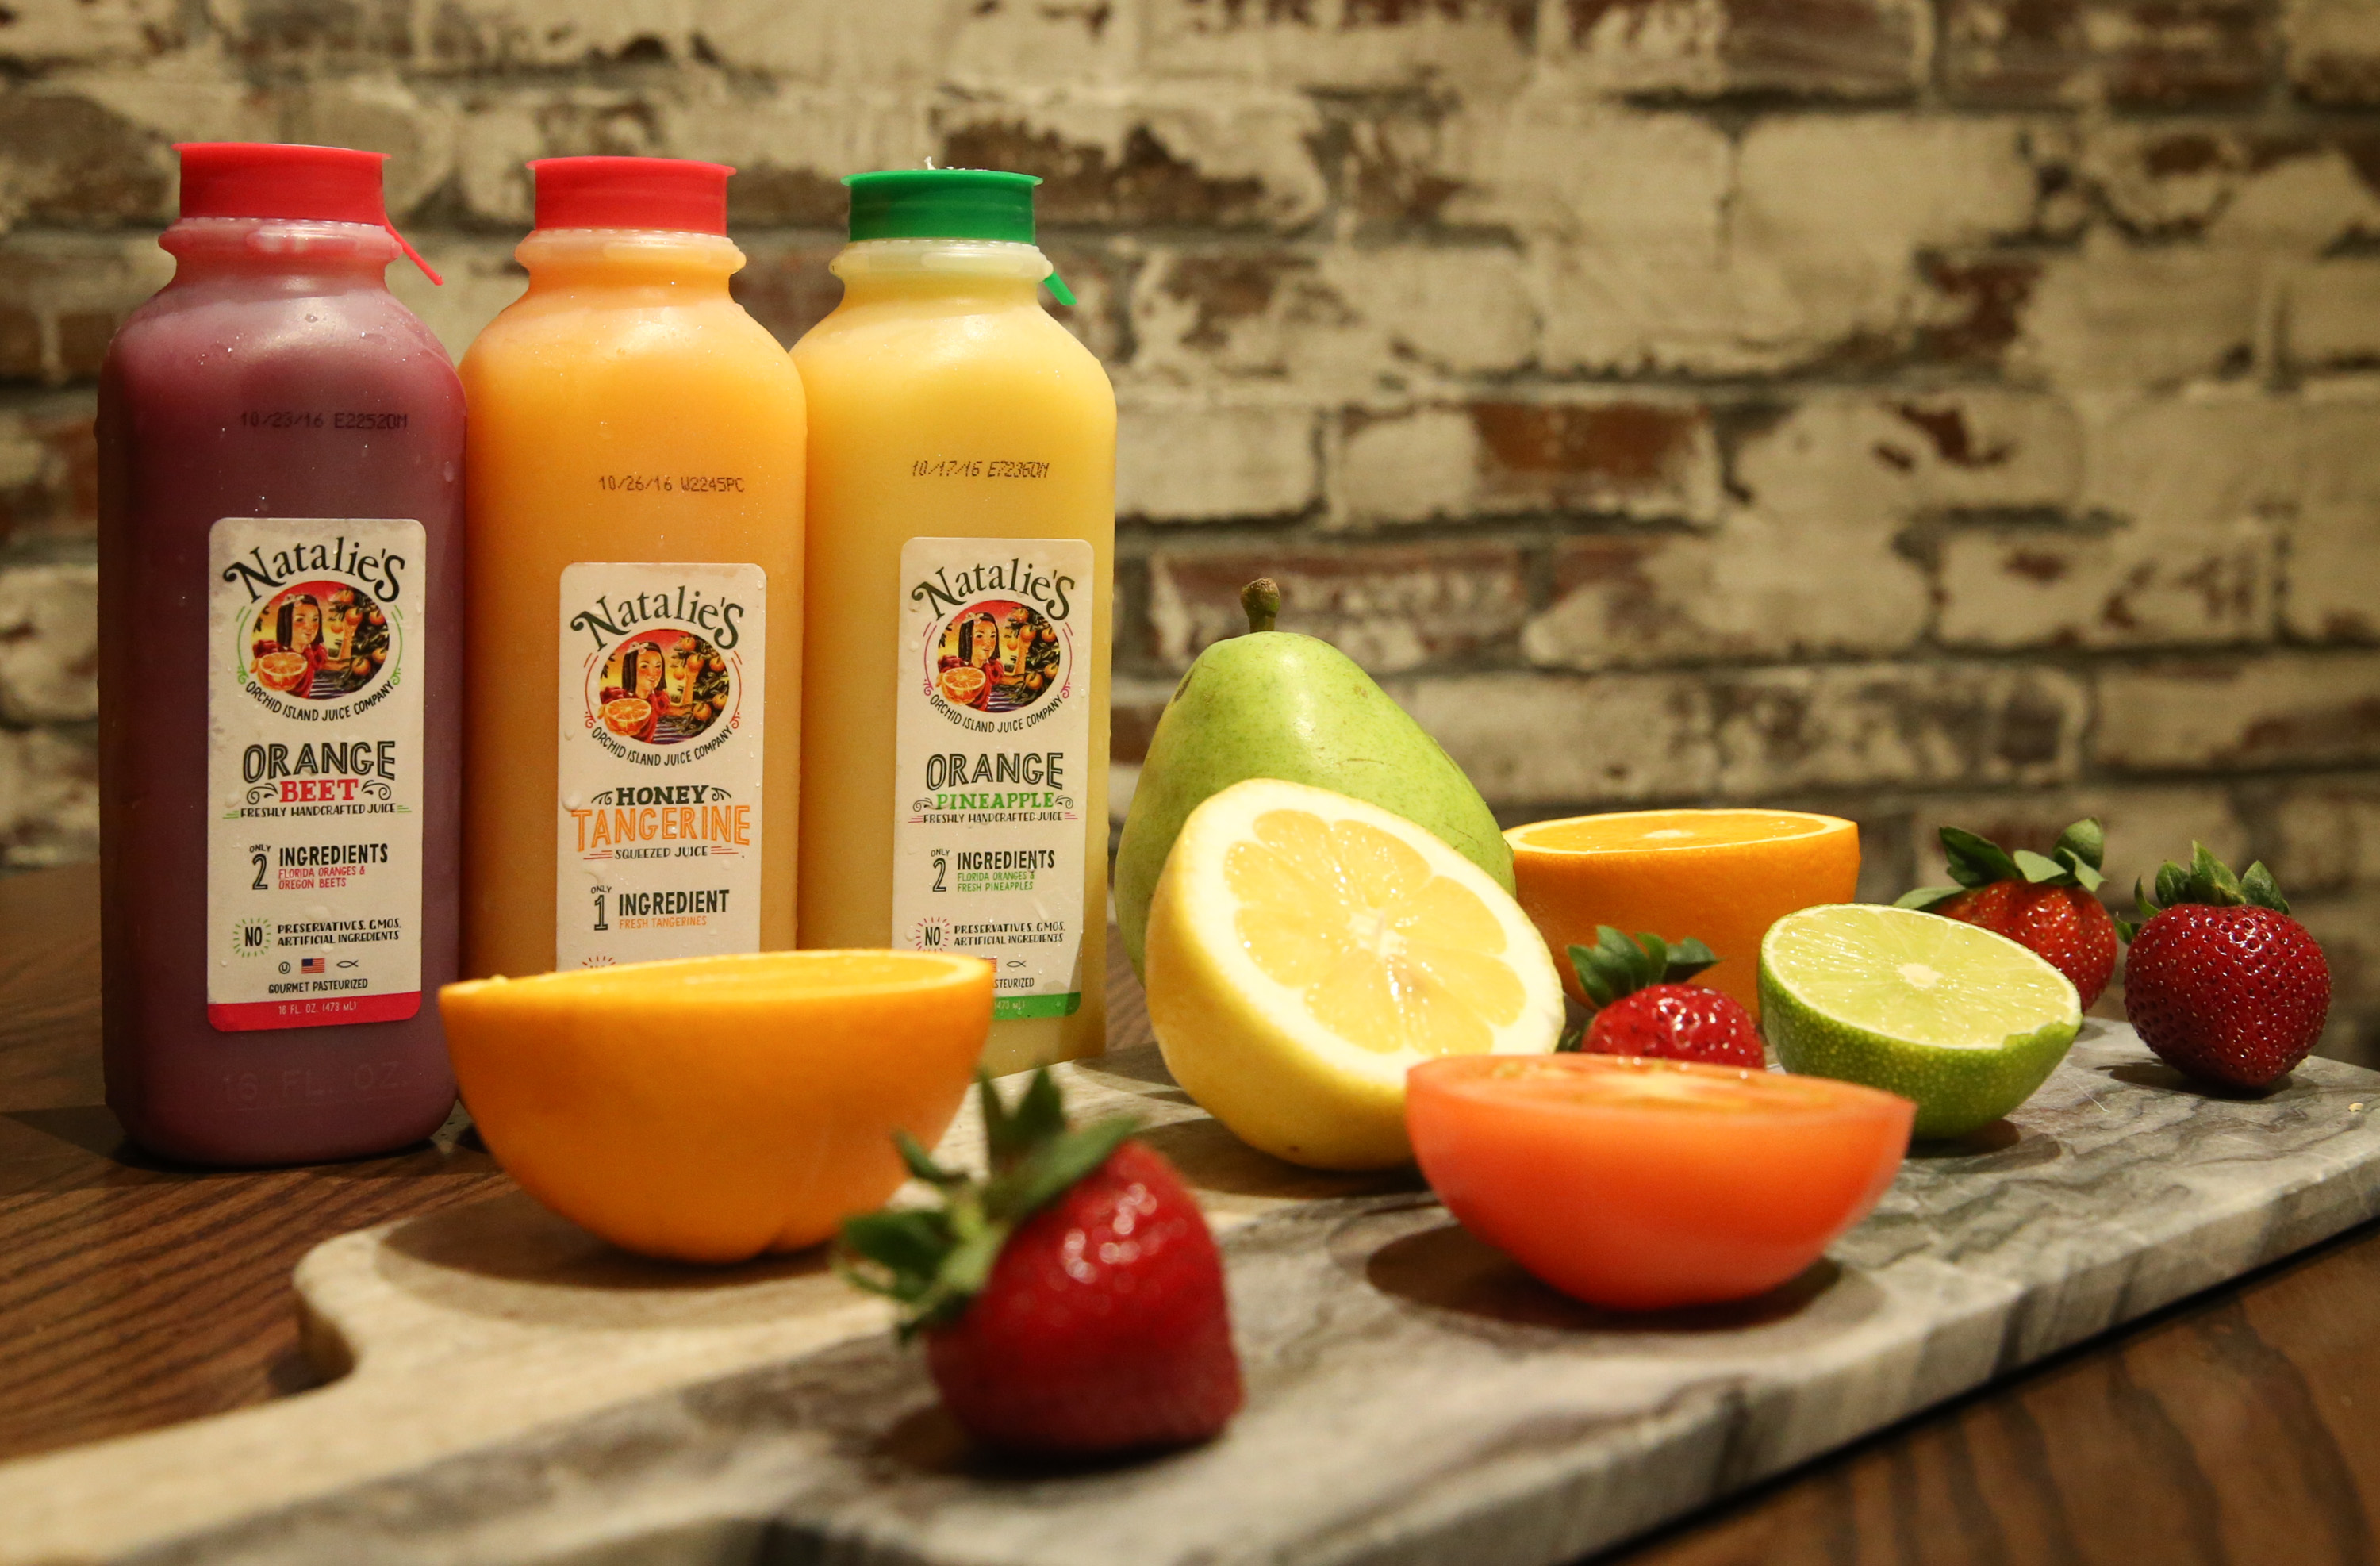 Orange juice sales are soaring during the pandemic